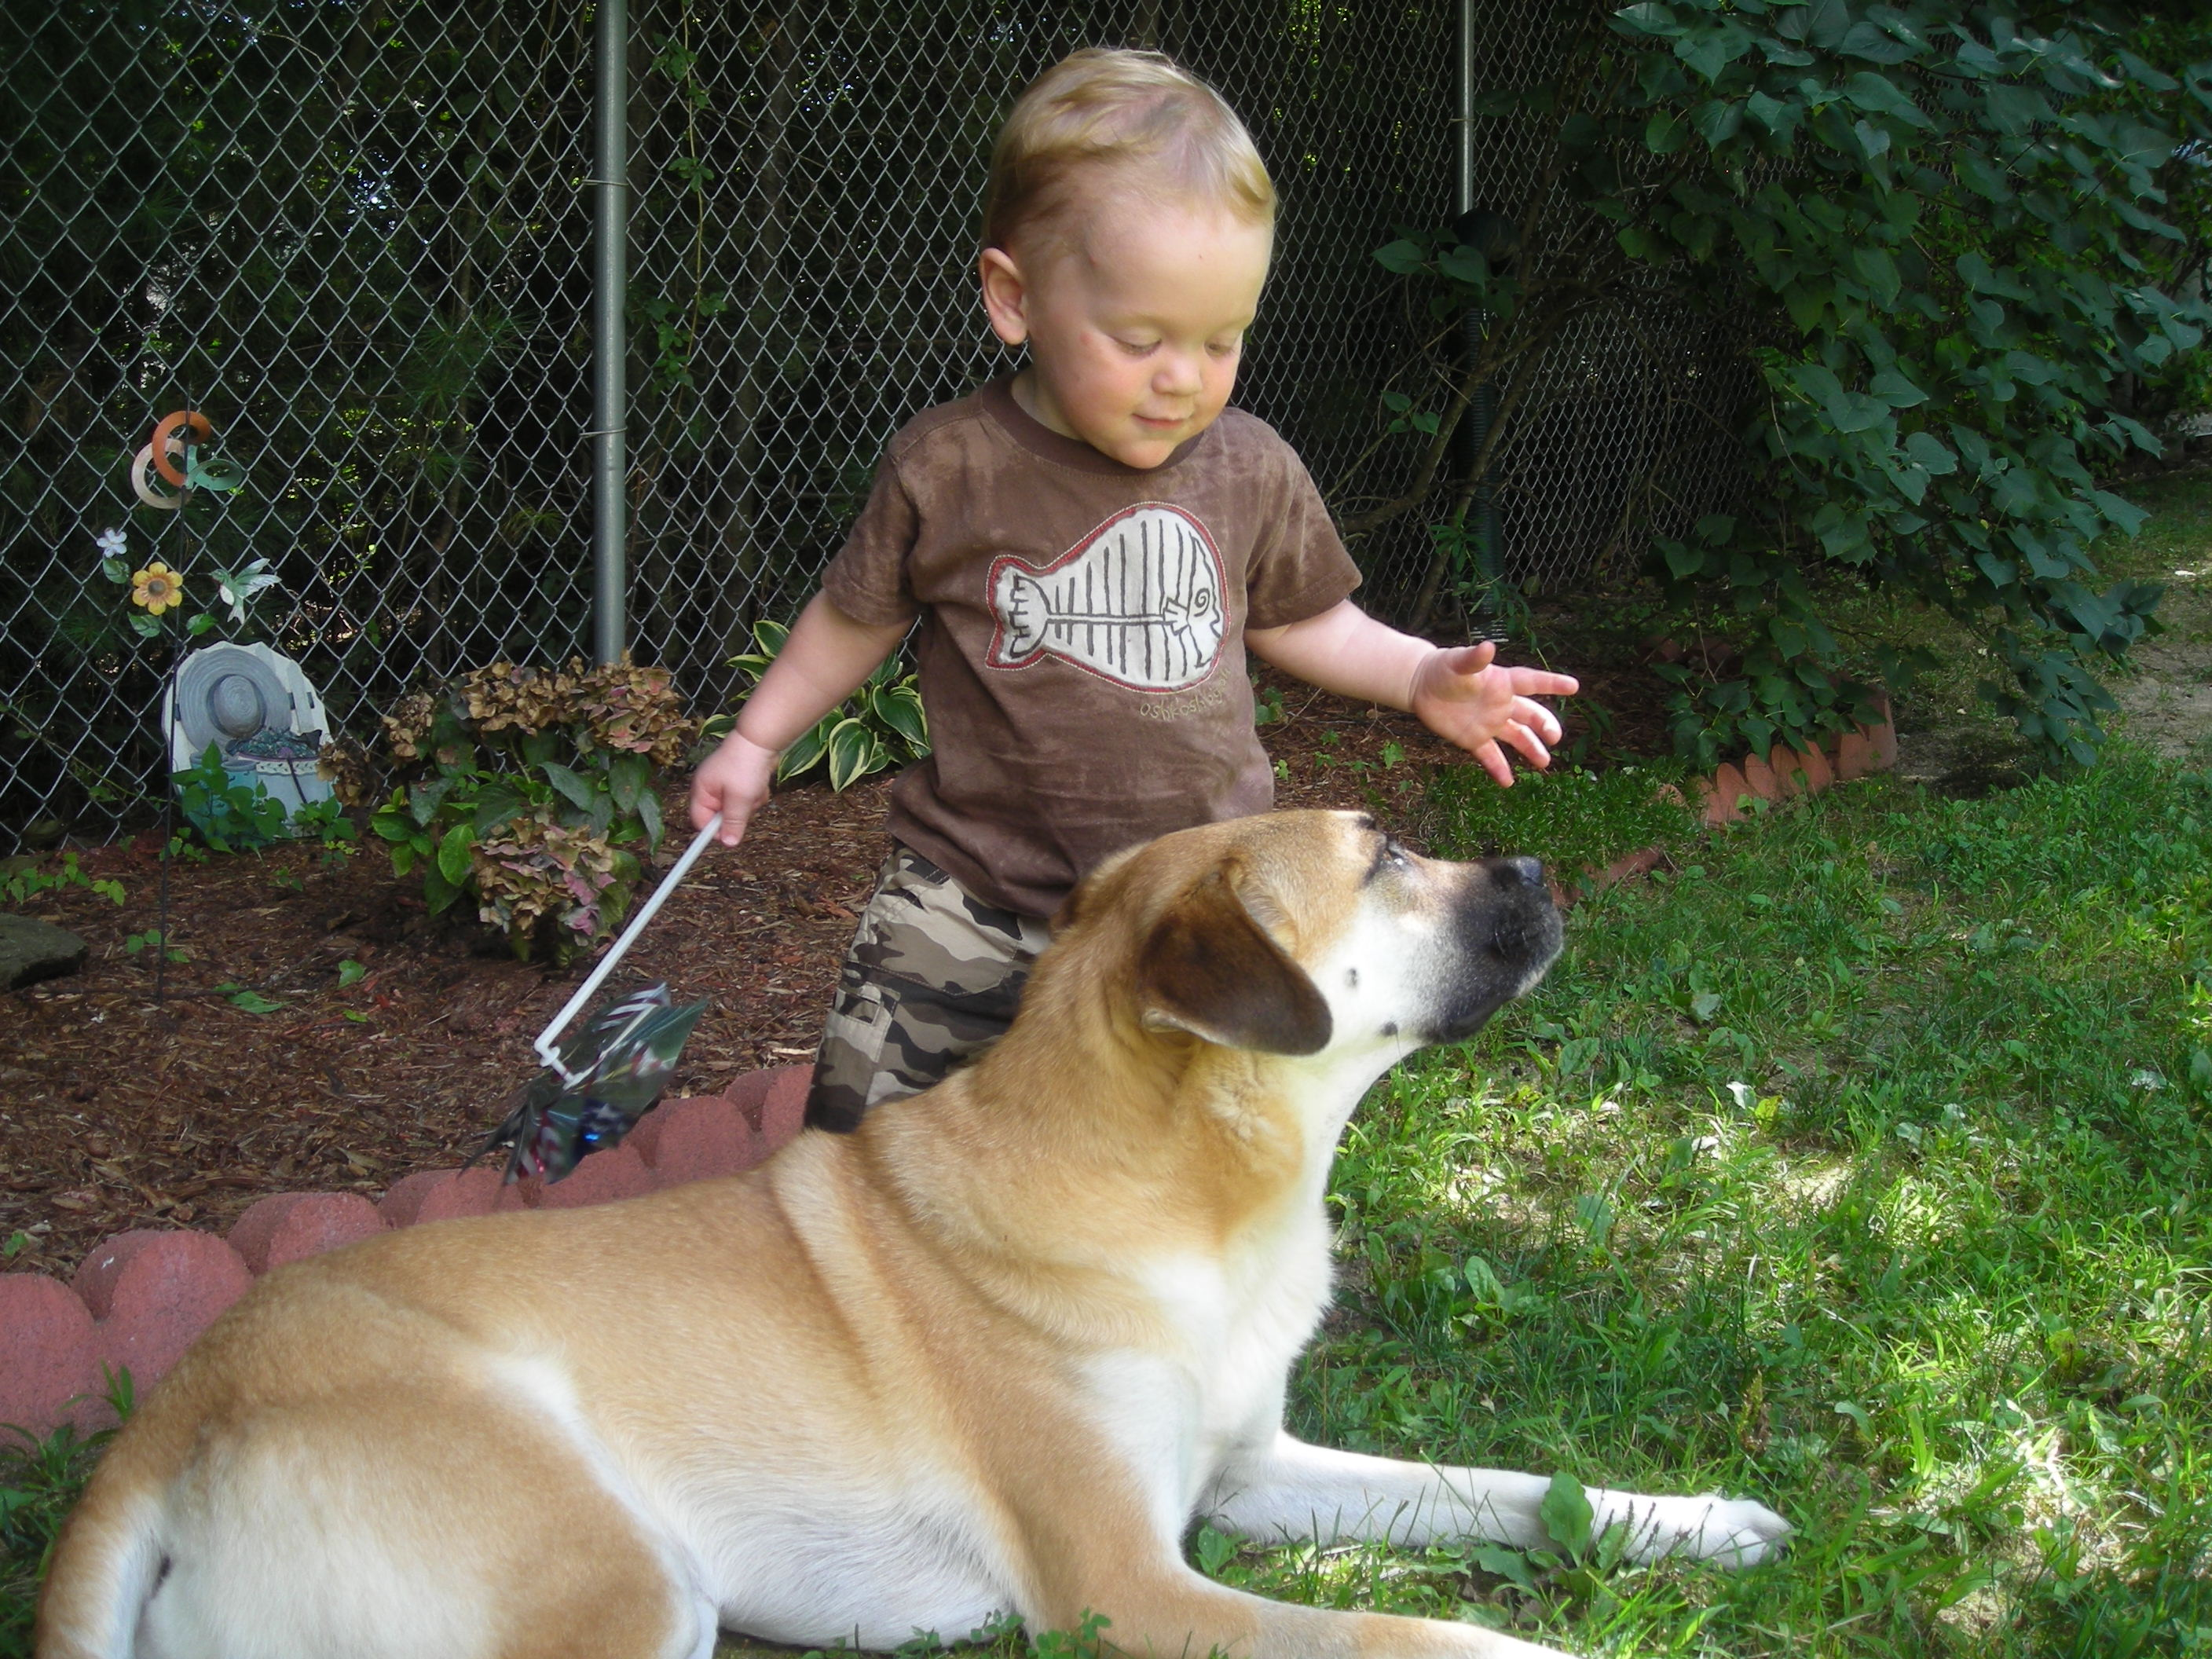 3 and 1/2 yo Ryder & our dog Mackey